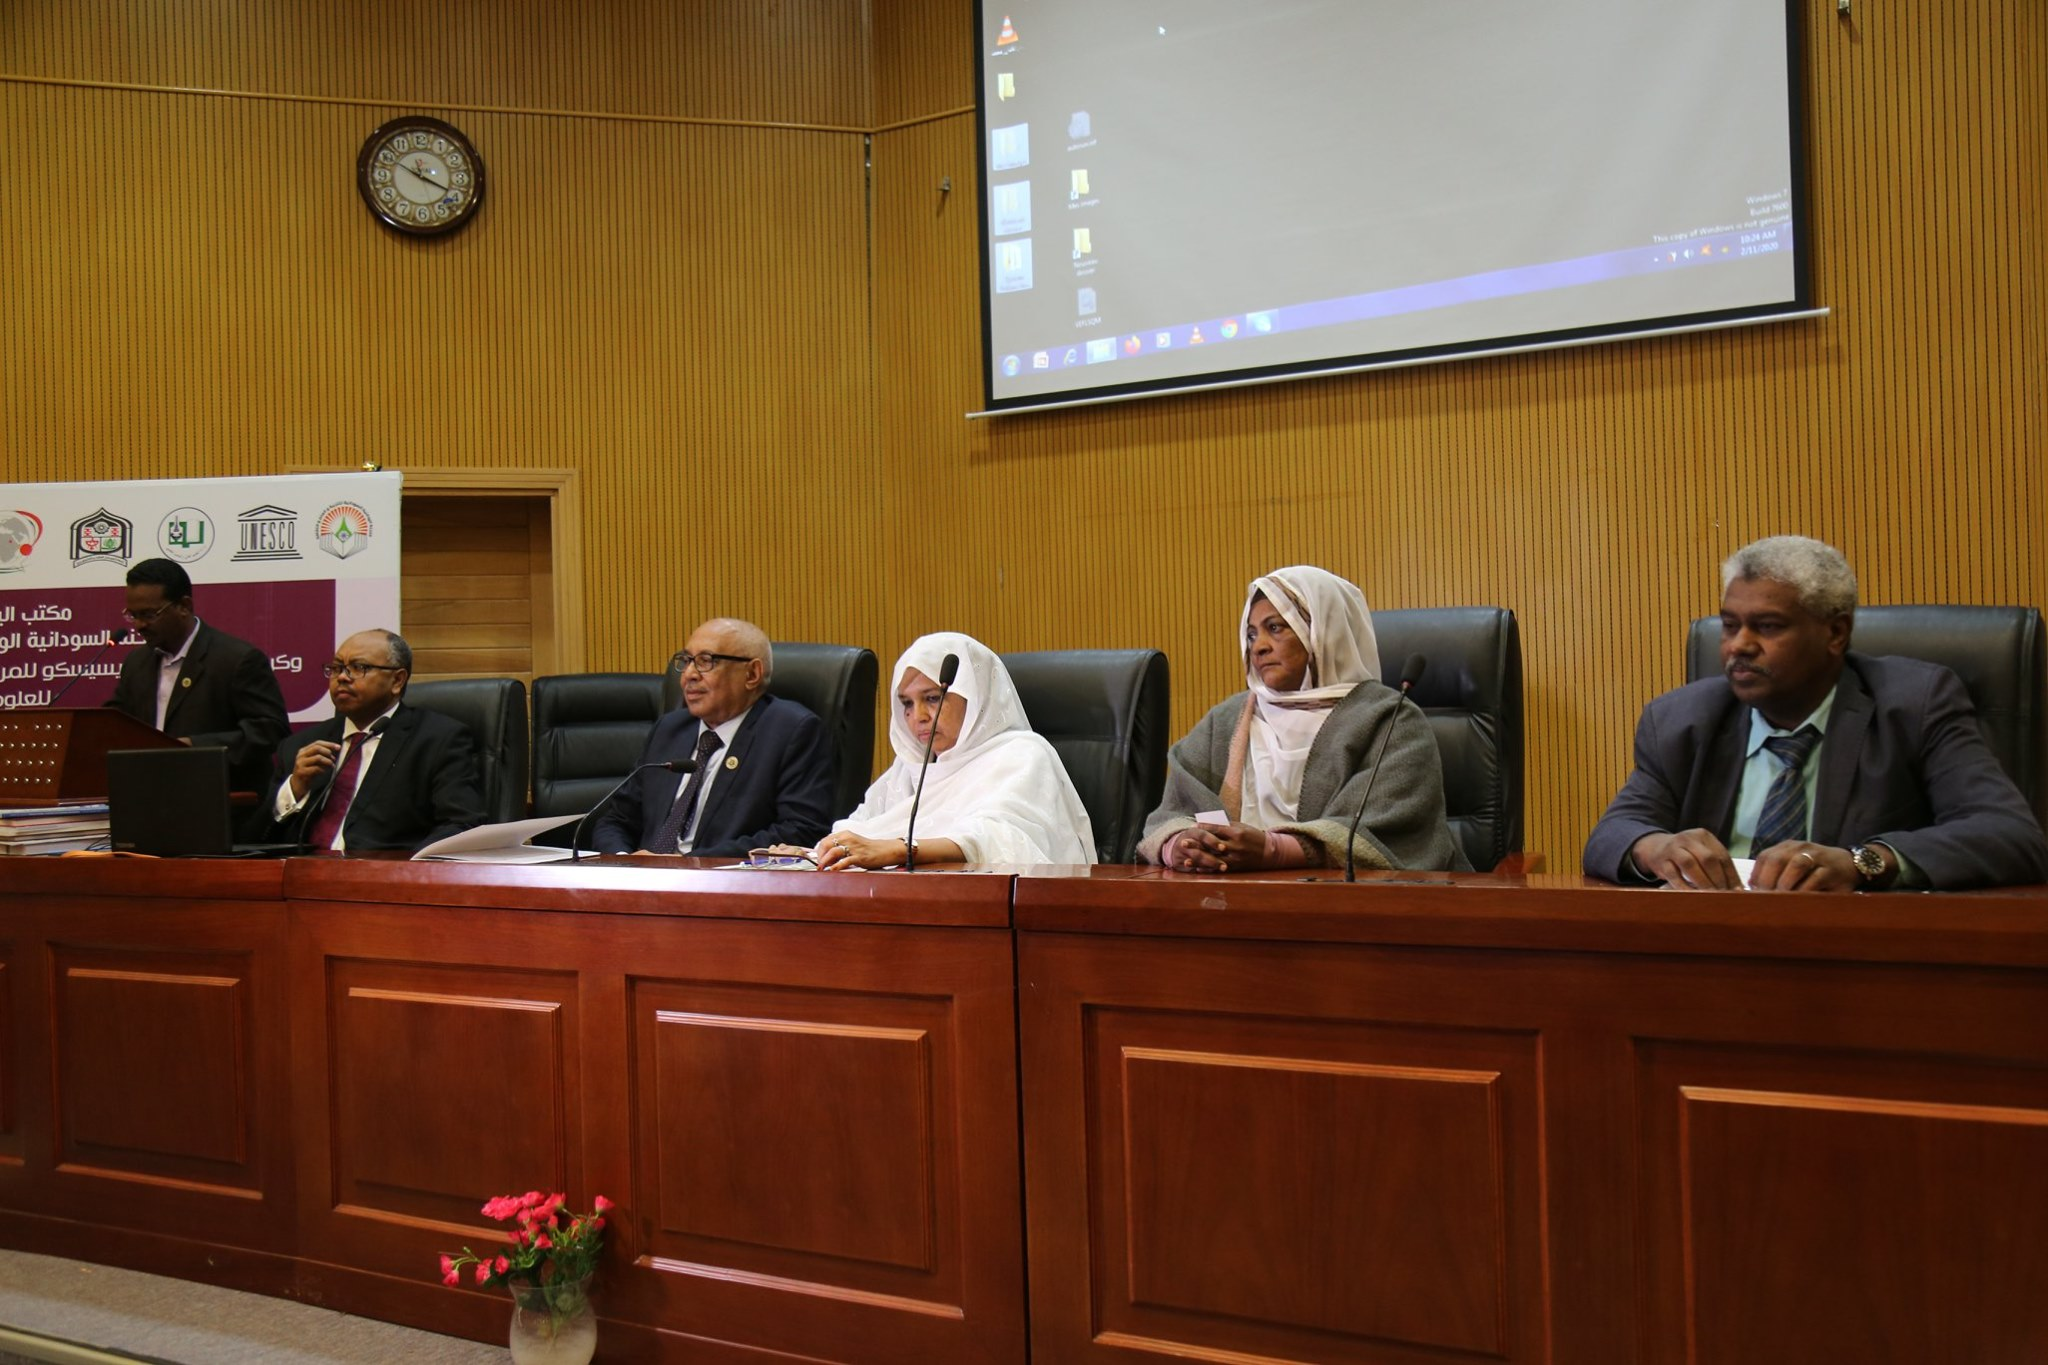 The Minister of Higher Education Addresses Sudan University Celebration of the International Day of Women and Girls in Science and Technology